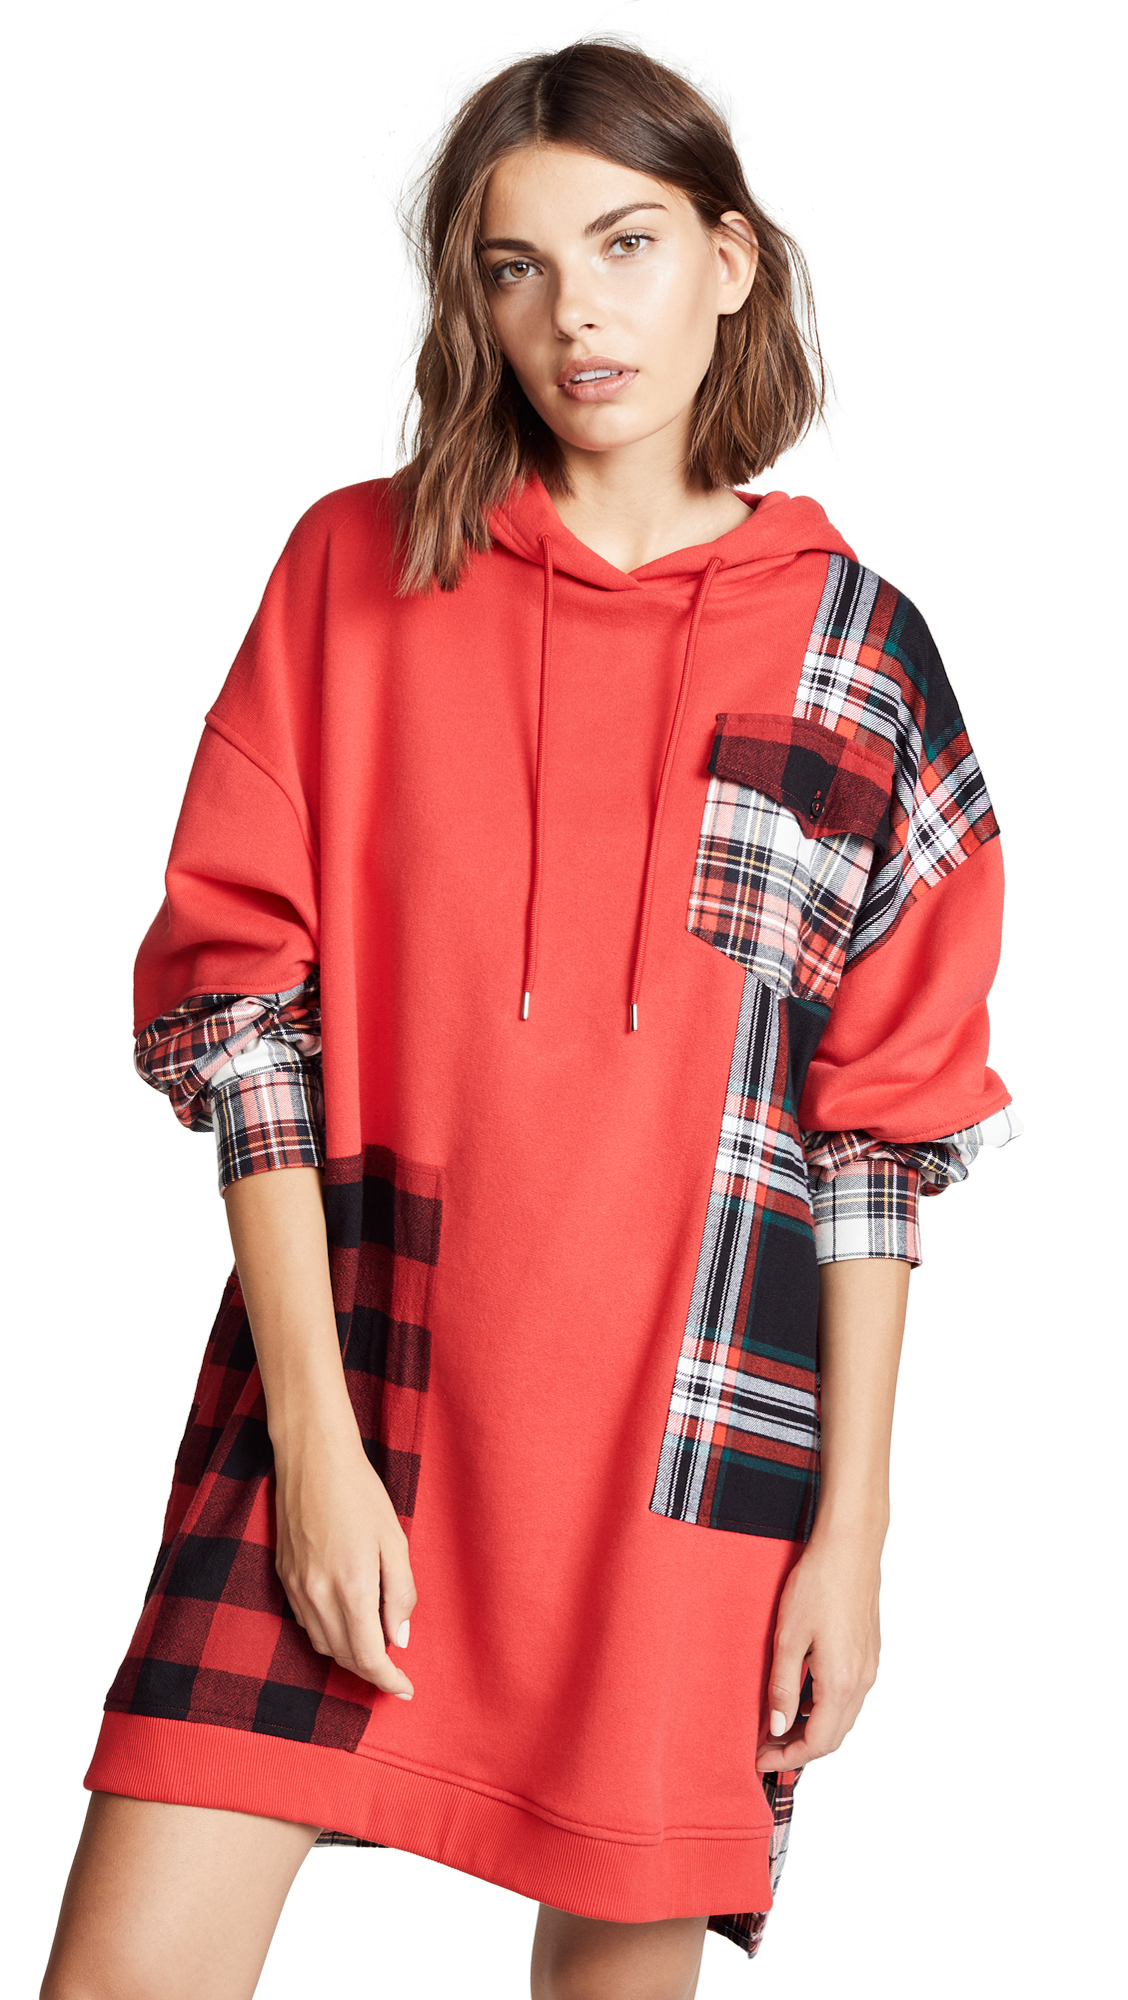 McQ - Alexander McQueen Patched Hoodie Dress In Riot Red